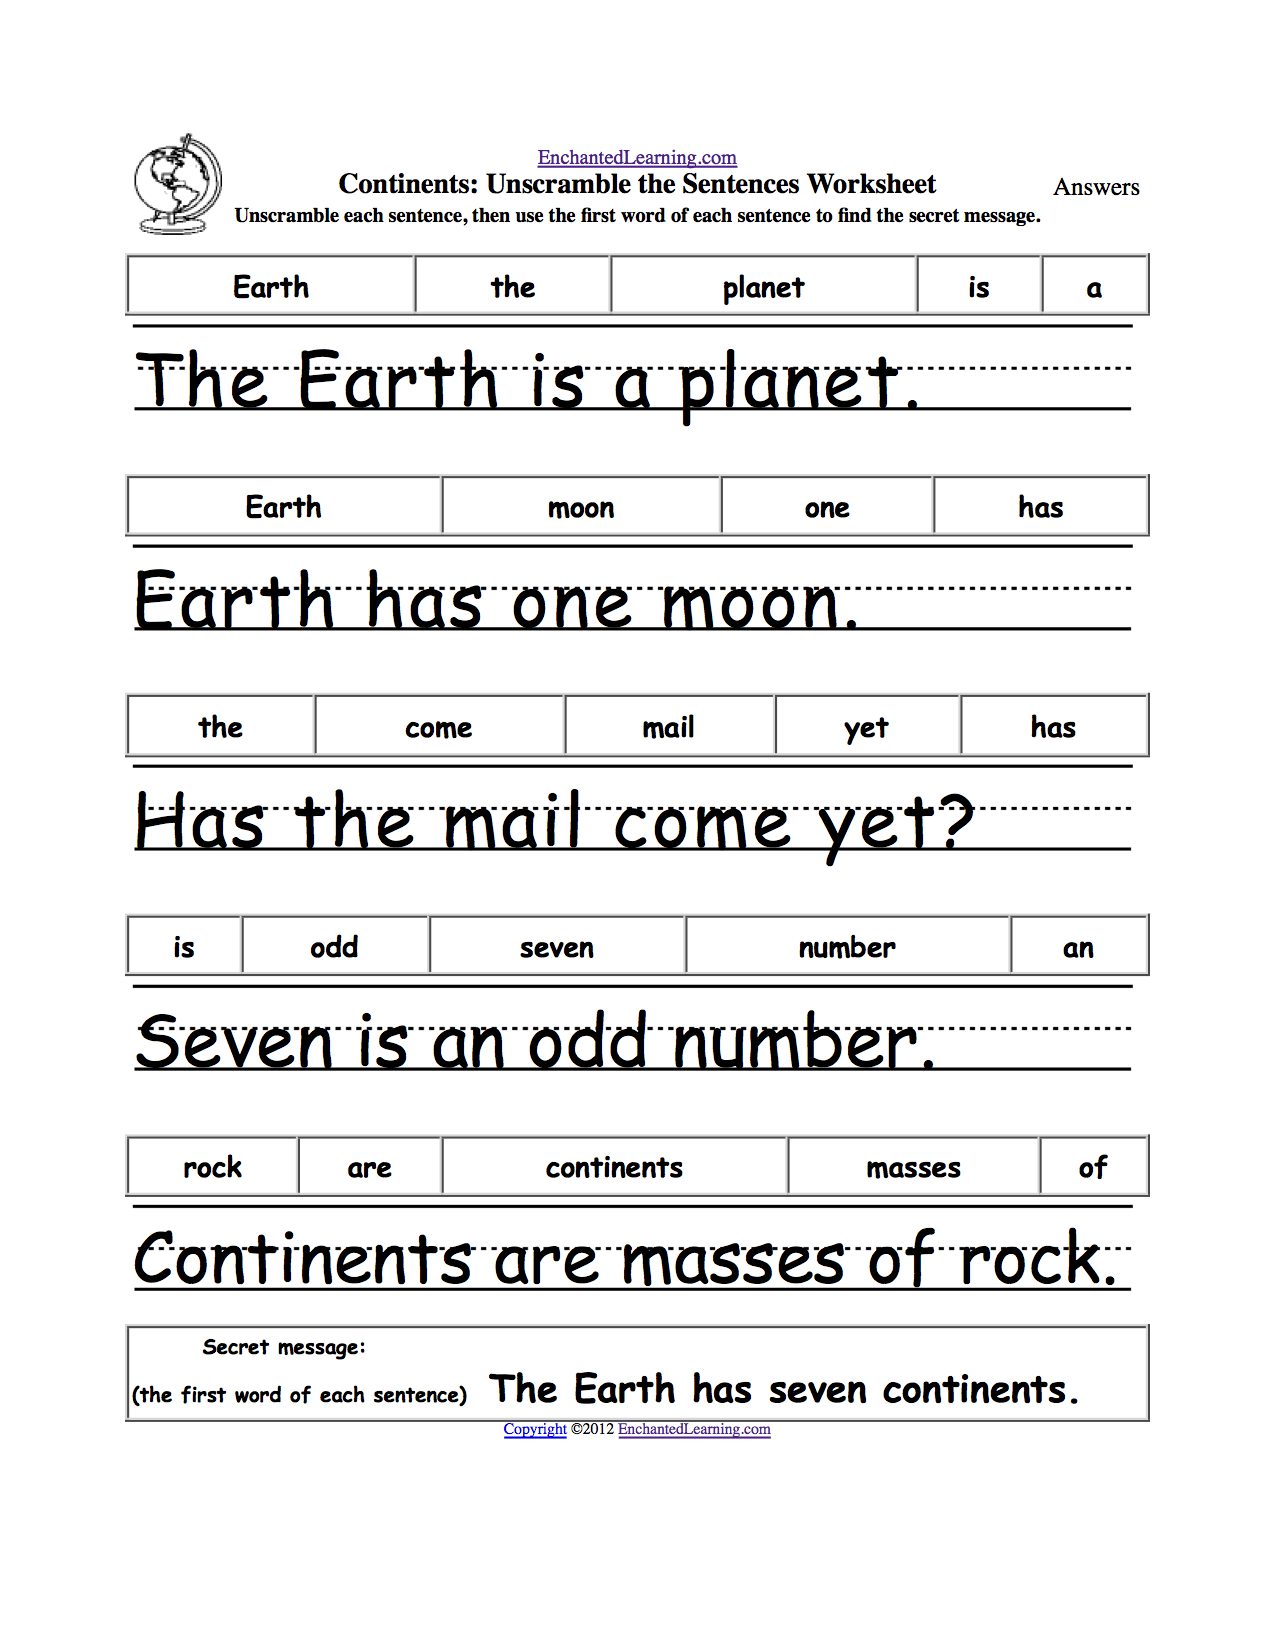 Worksheet Easy Grammar Worksheets grammar enchantedlearning com unscramble the sentences worksheet